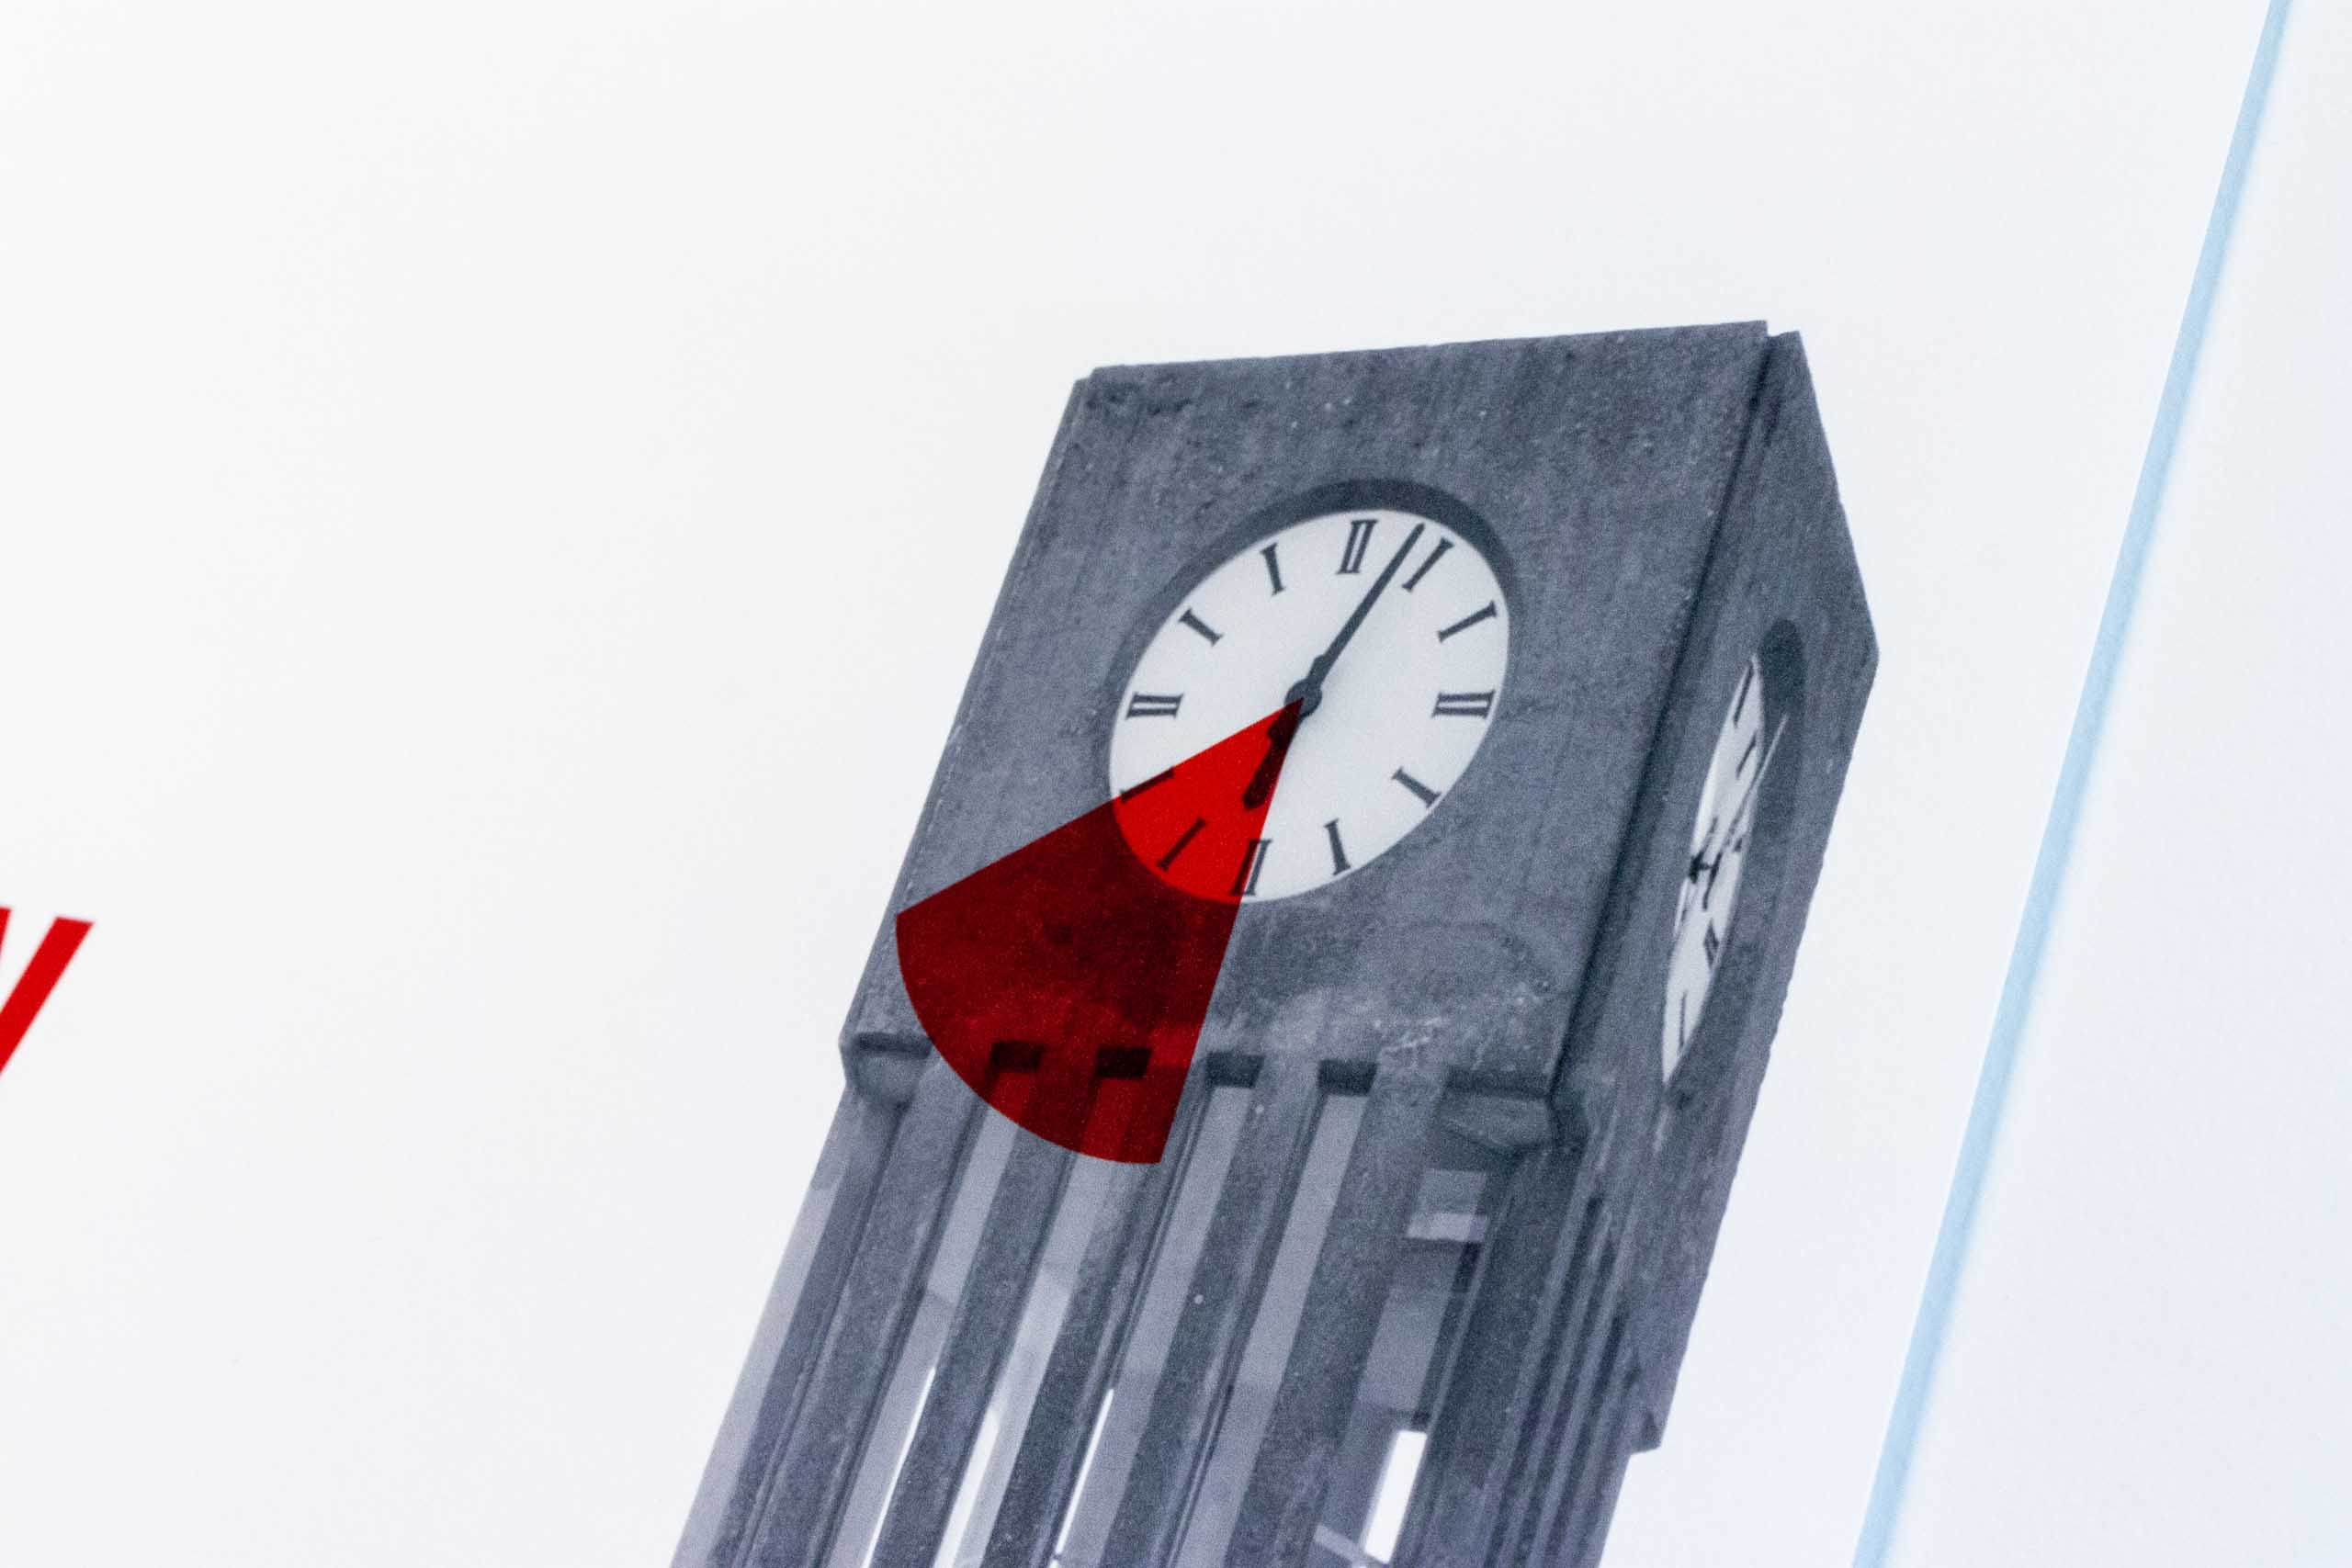 Close up photo of UBC clock tower with event time highlighted in red — by Yagnyuk.